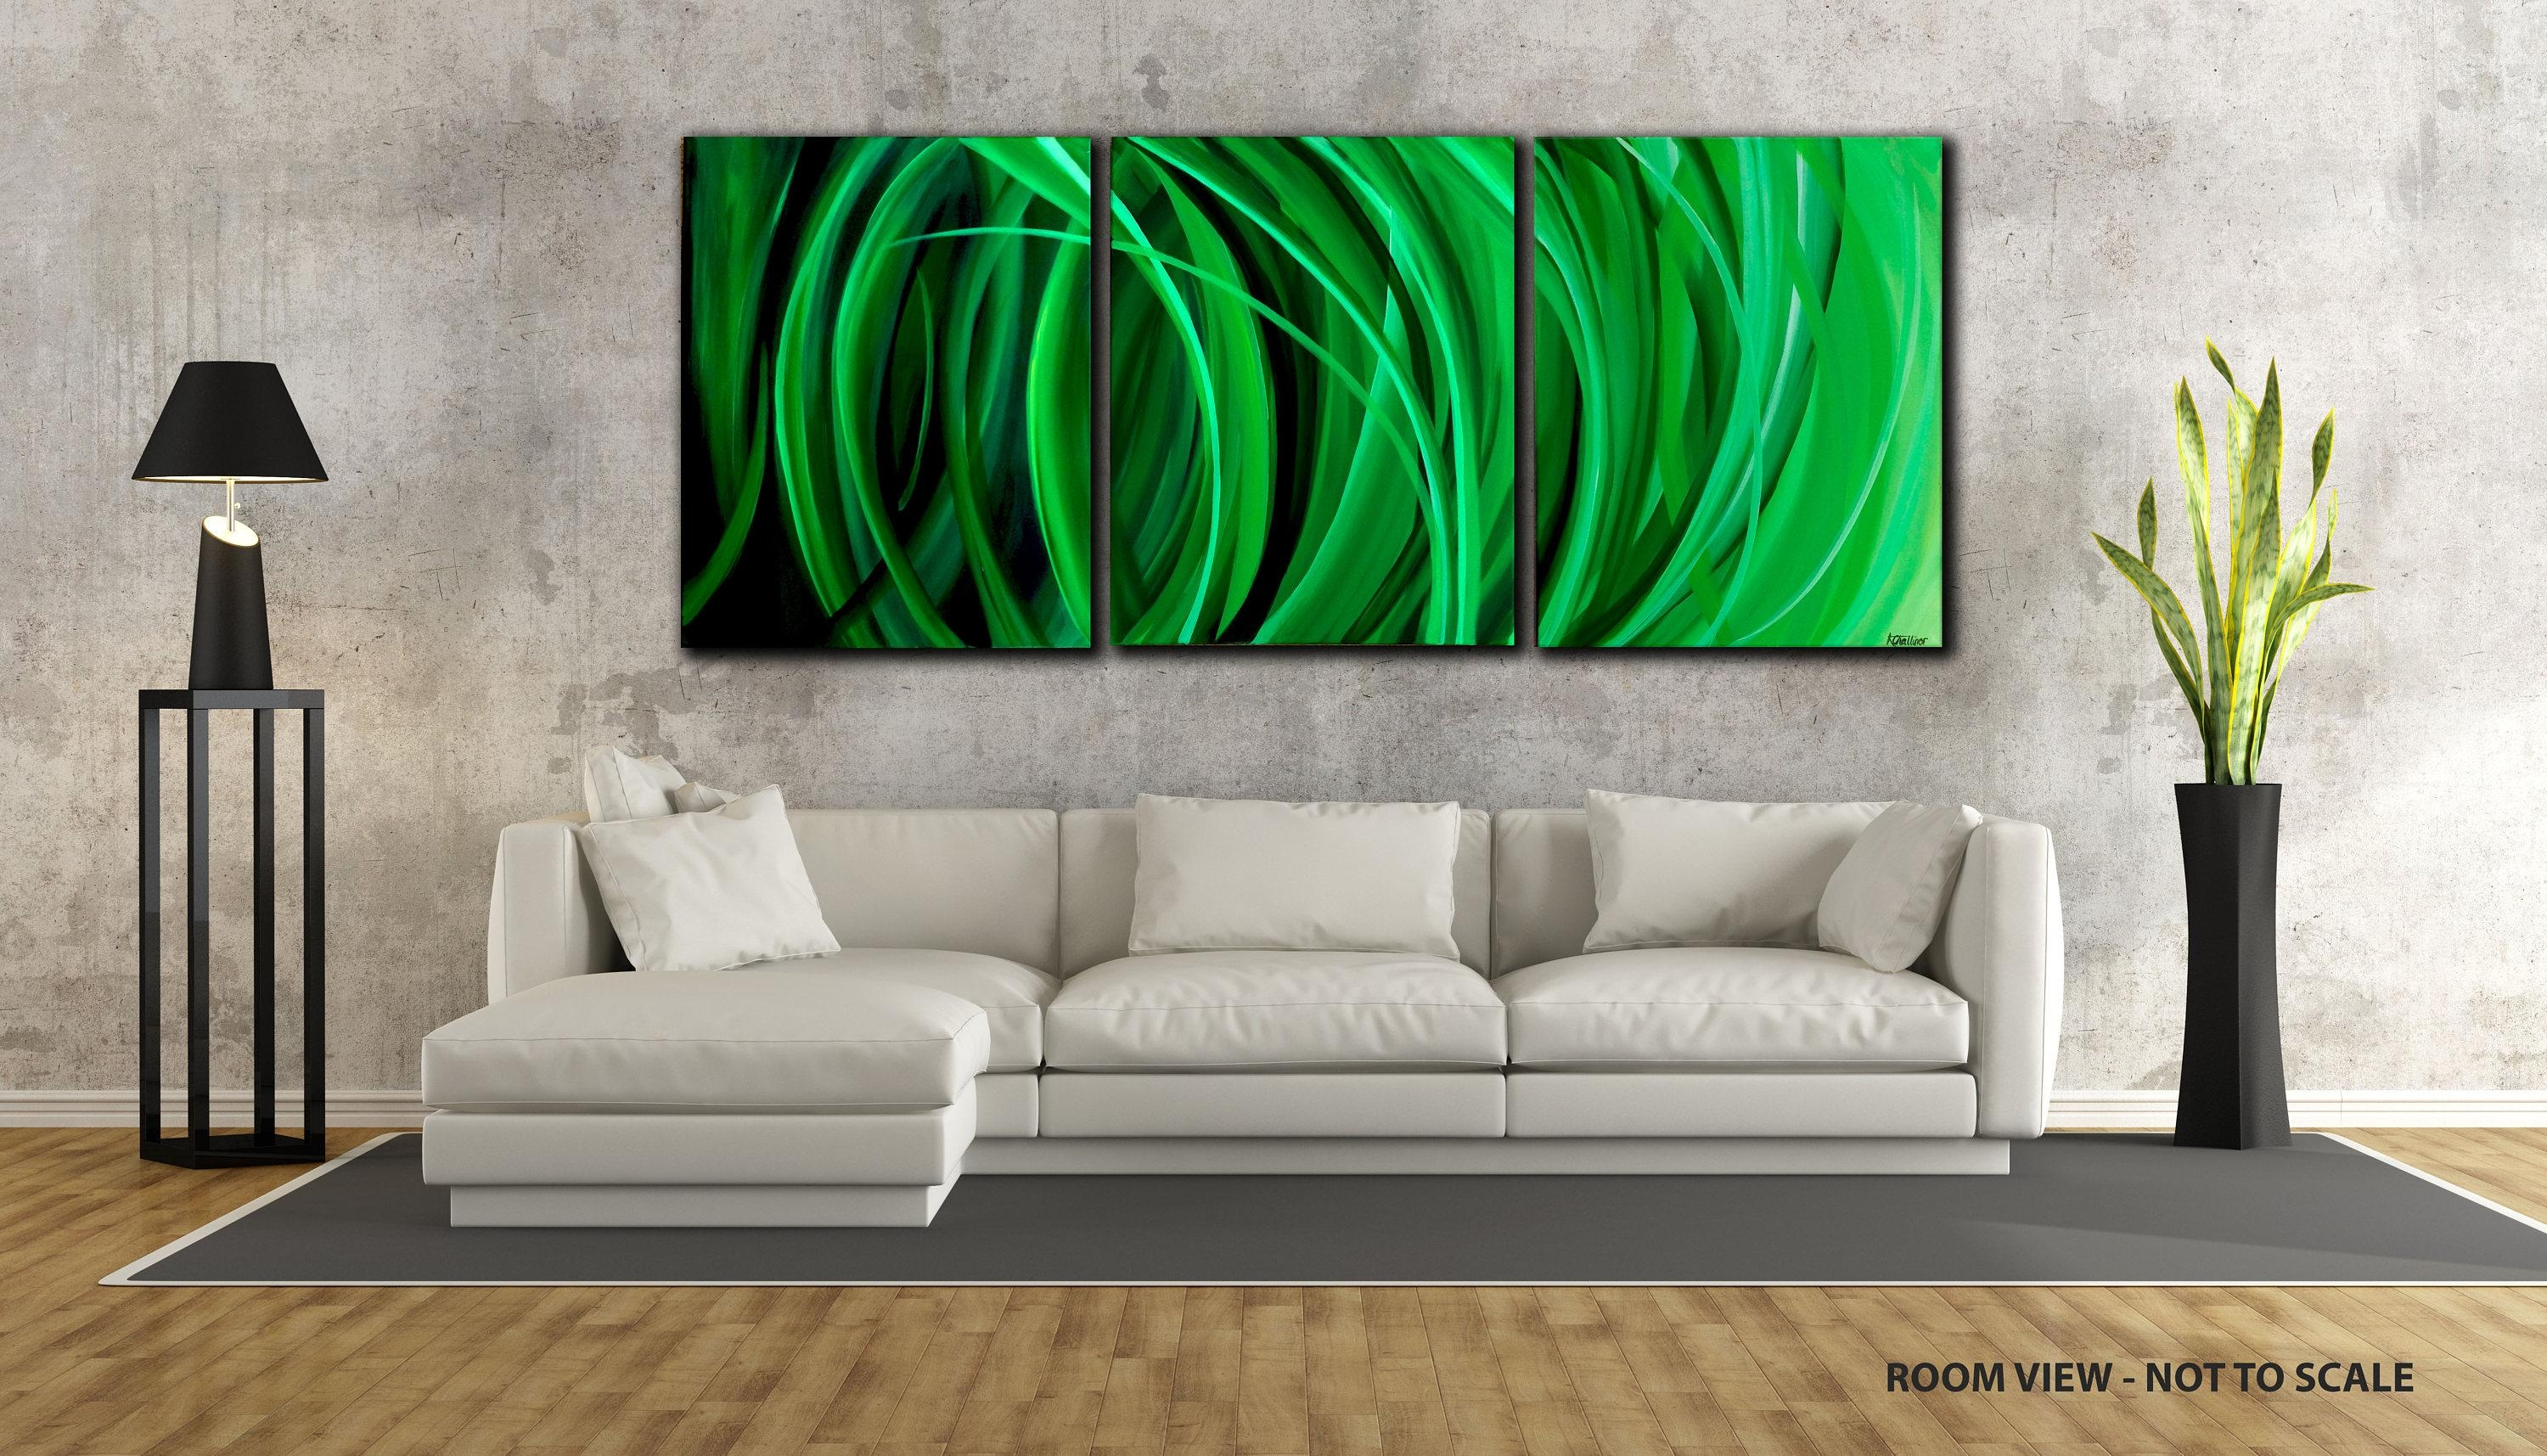 48 Large, Original Abstract Painting, Canvas, Wall Art, Modern Inside Large Green Wall Art (Image 1 of 20)